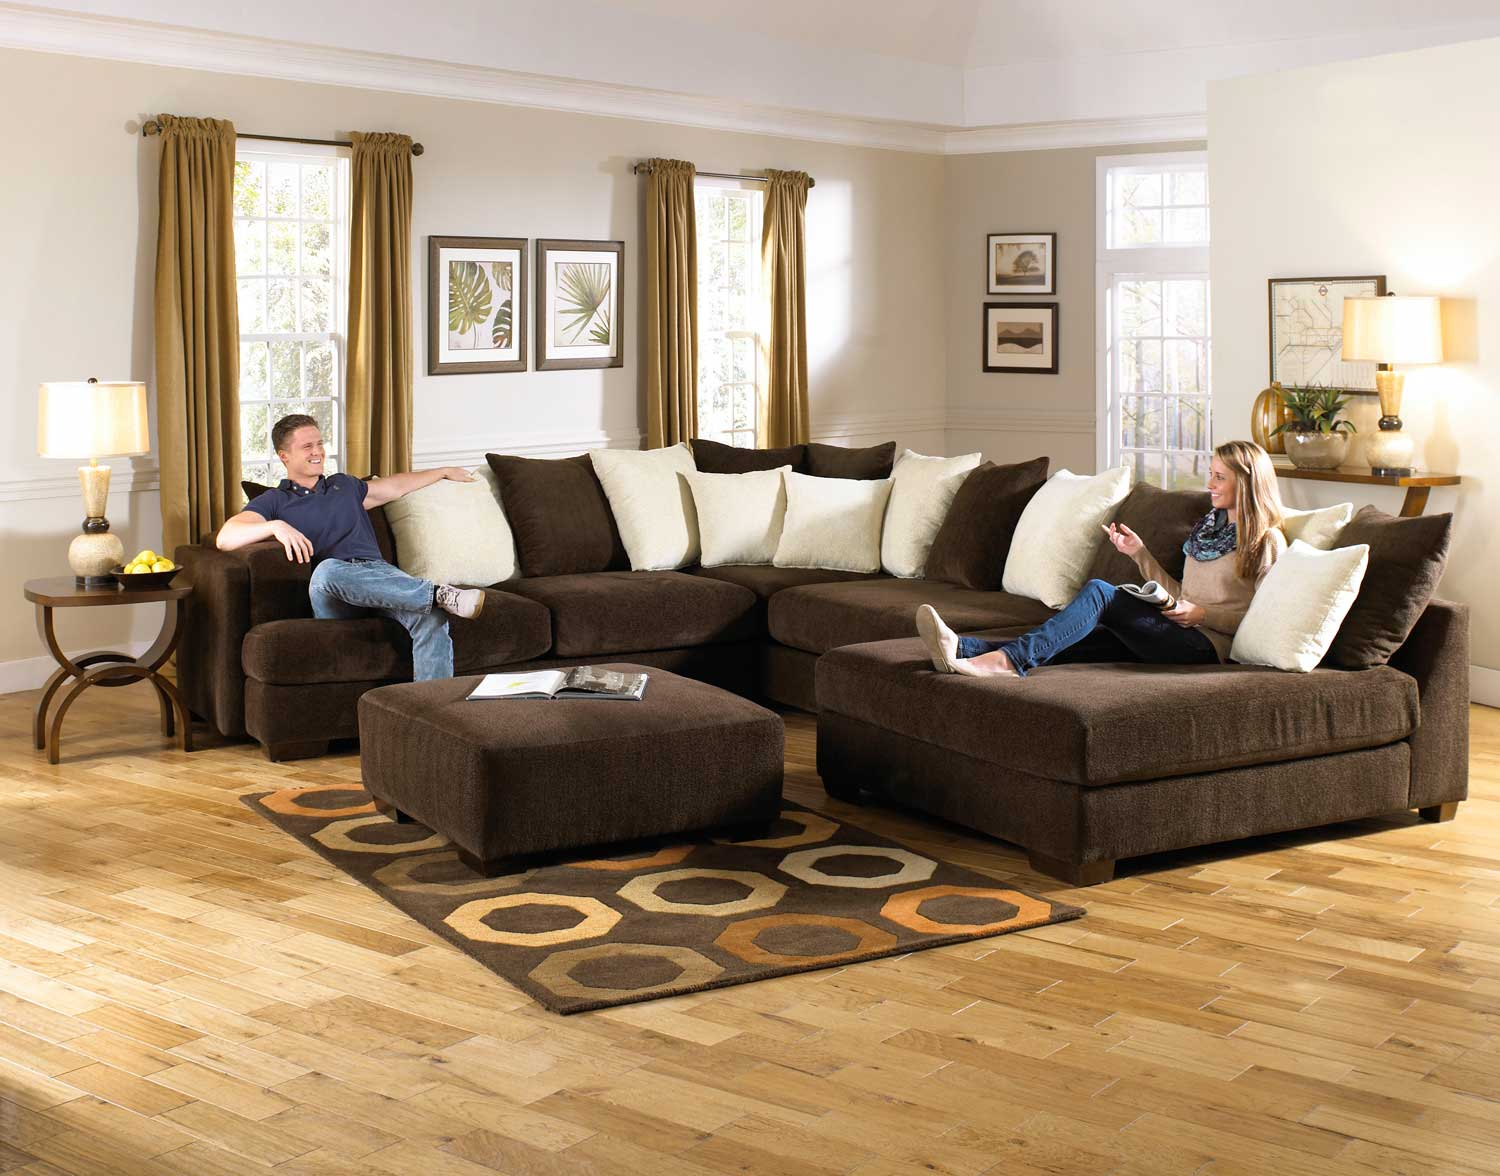 Jackson Axis Large Sectional Sofa Set - Chocolate 4429-62-36-38-SET ...